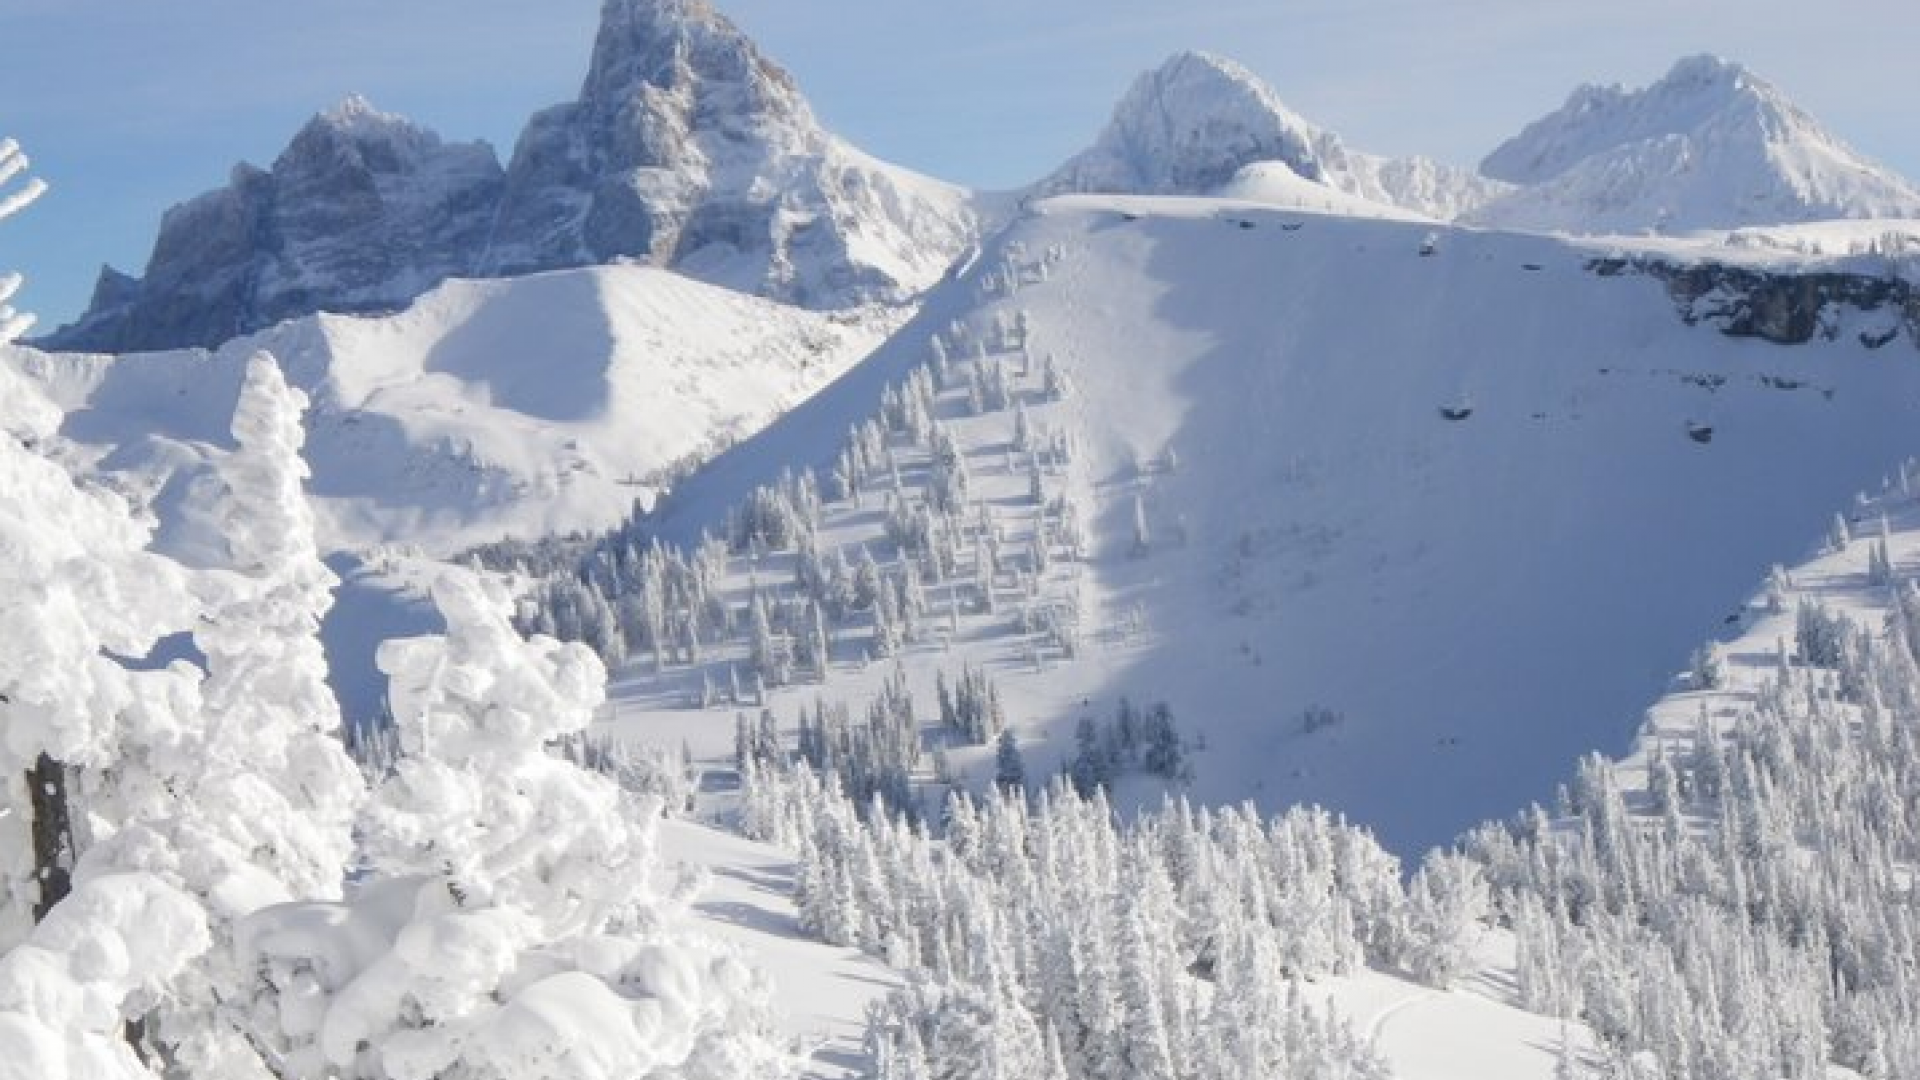 Credit: Jackson Hole Central Reservations